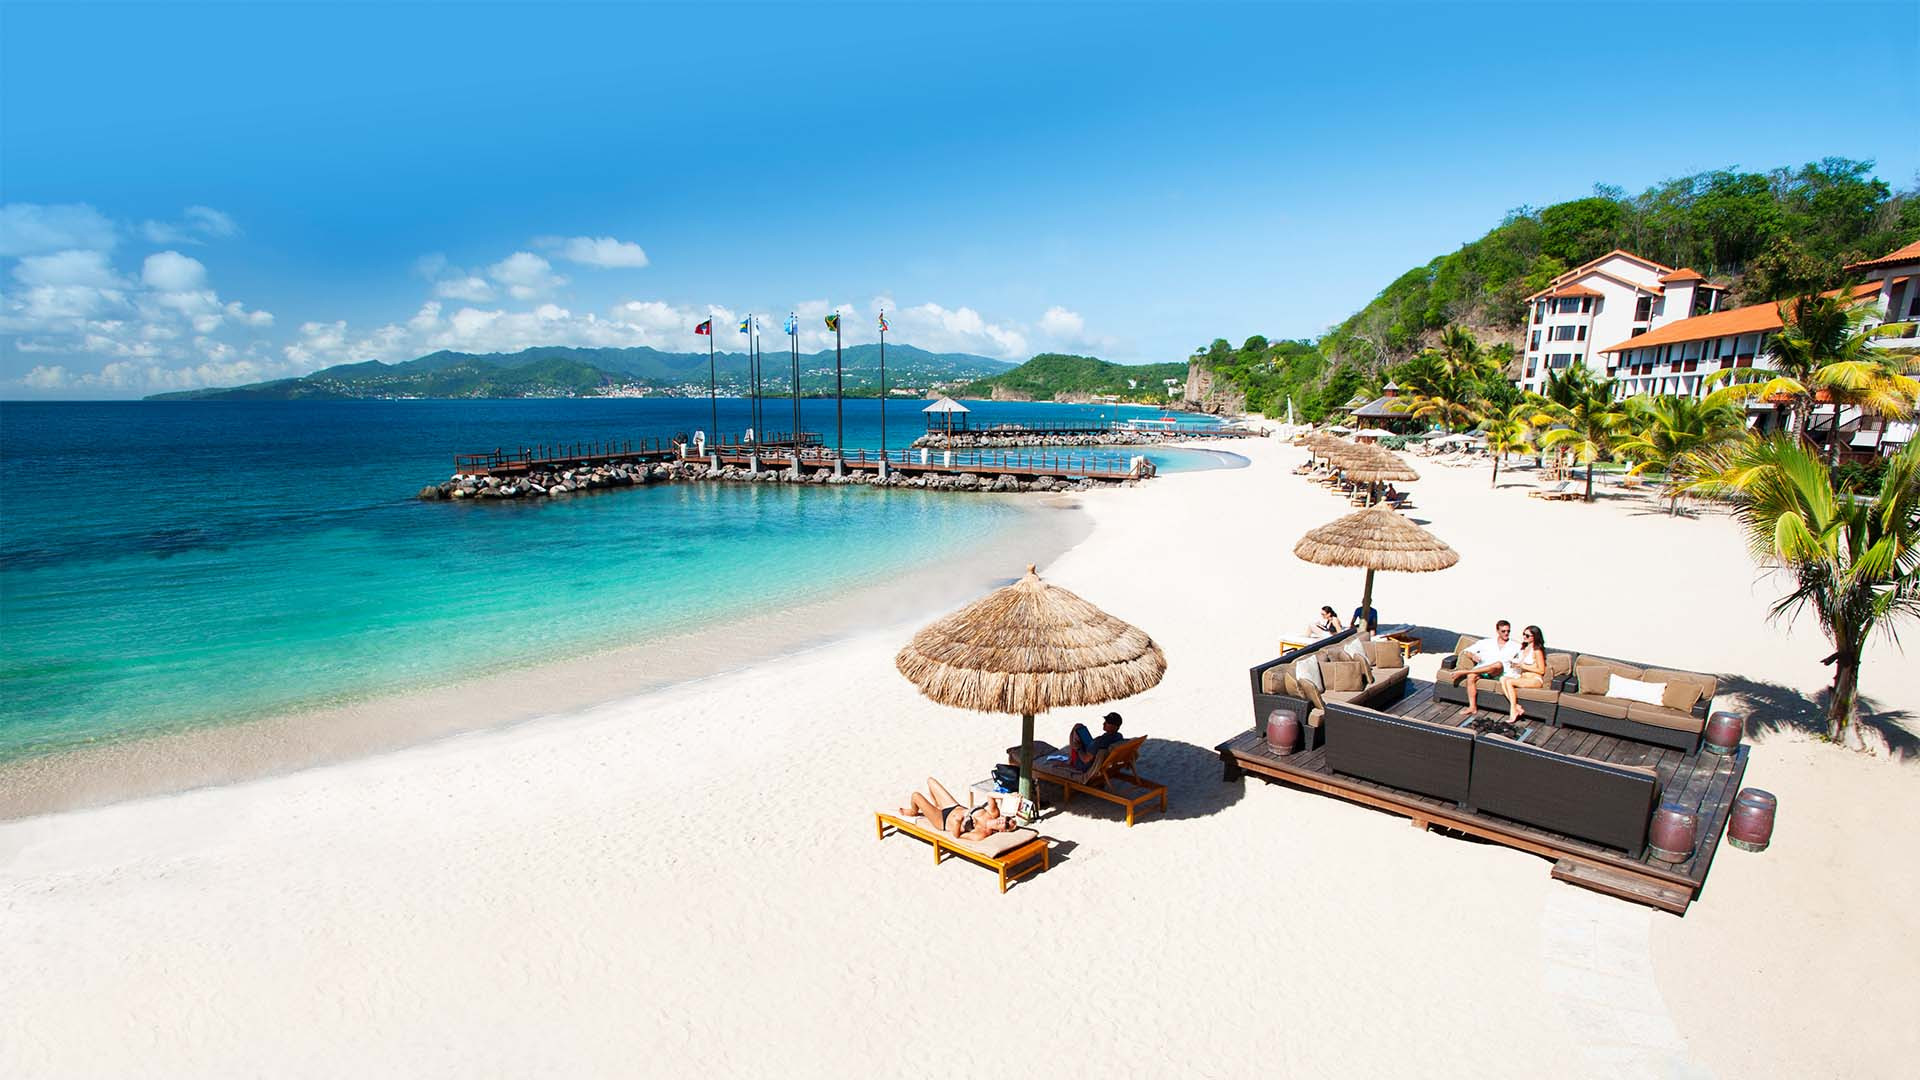 Beach at Sandals resort in the Caribbean